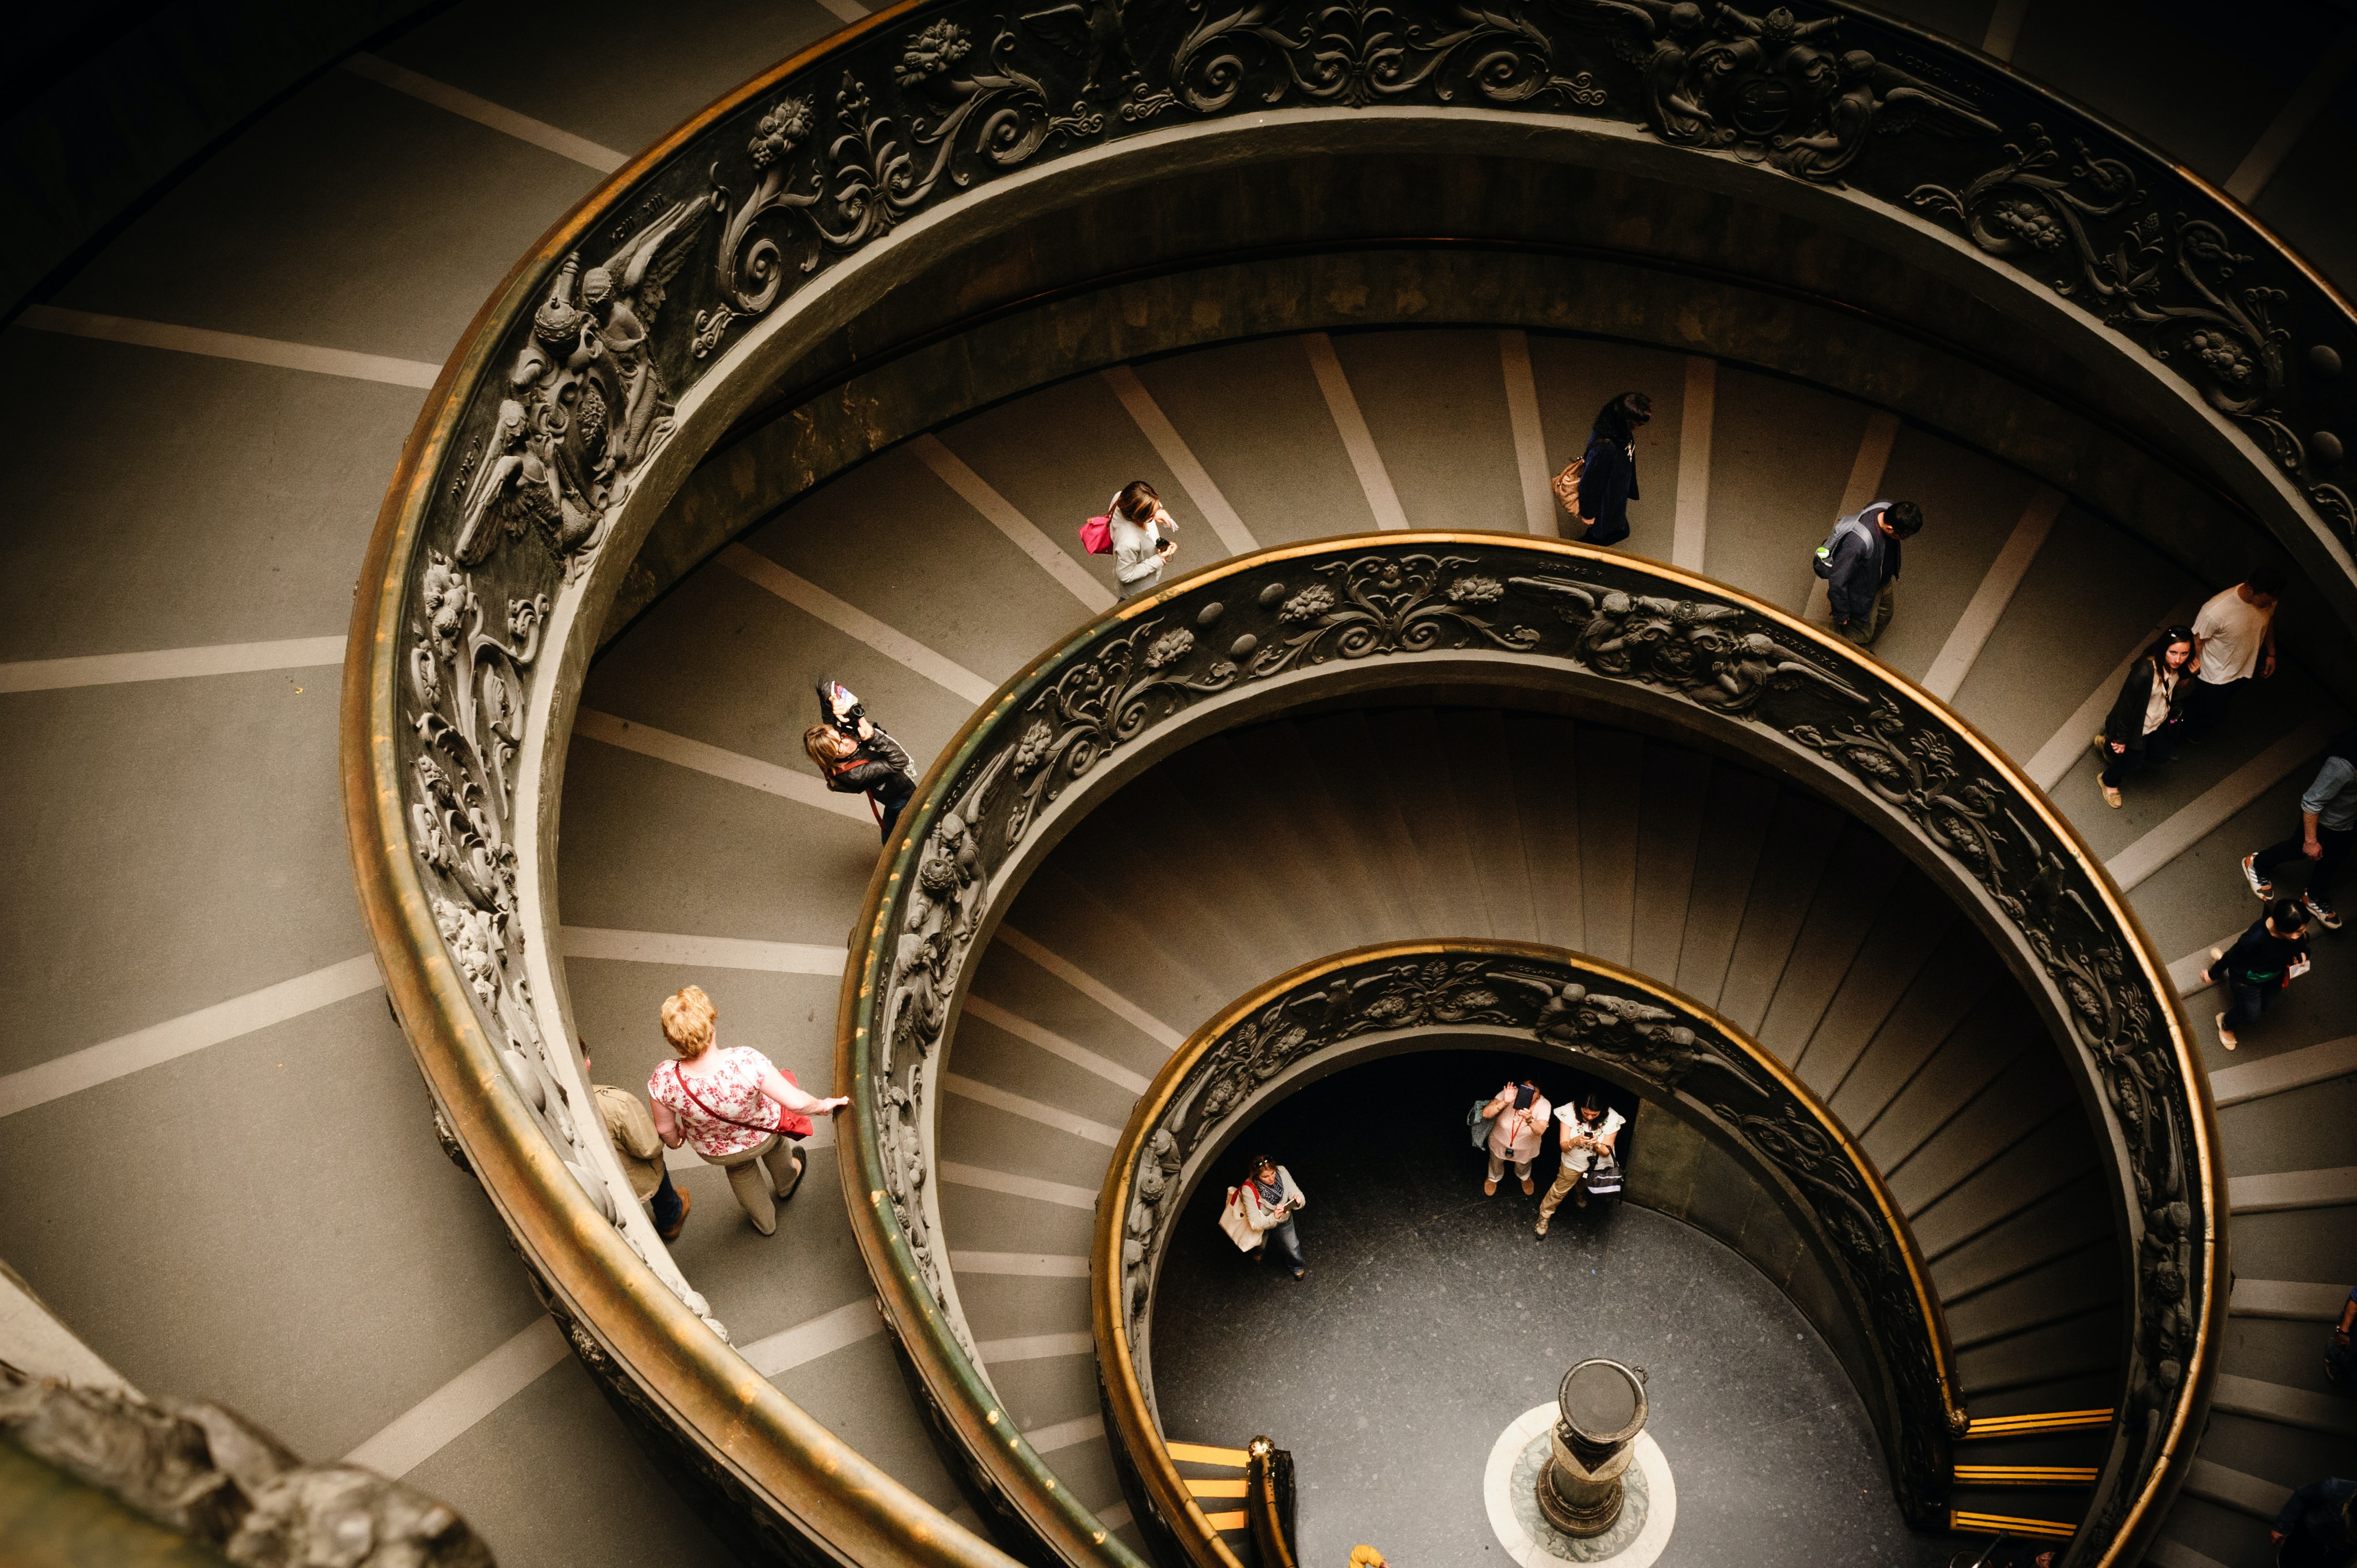 An overhead shot of people going down a spiral staircase